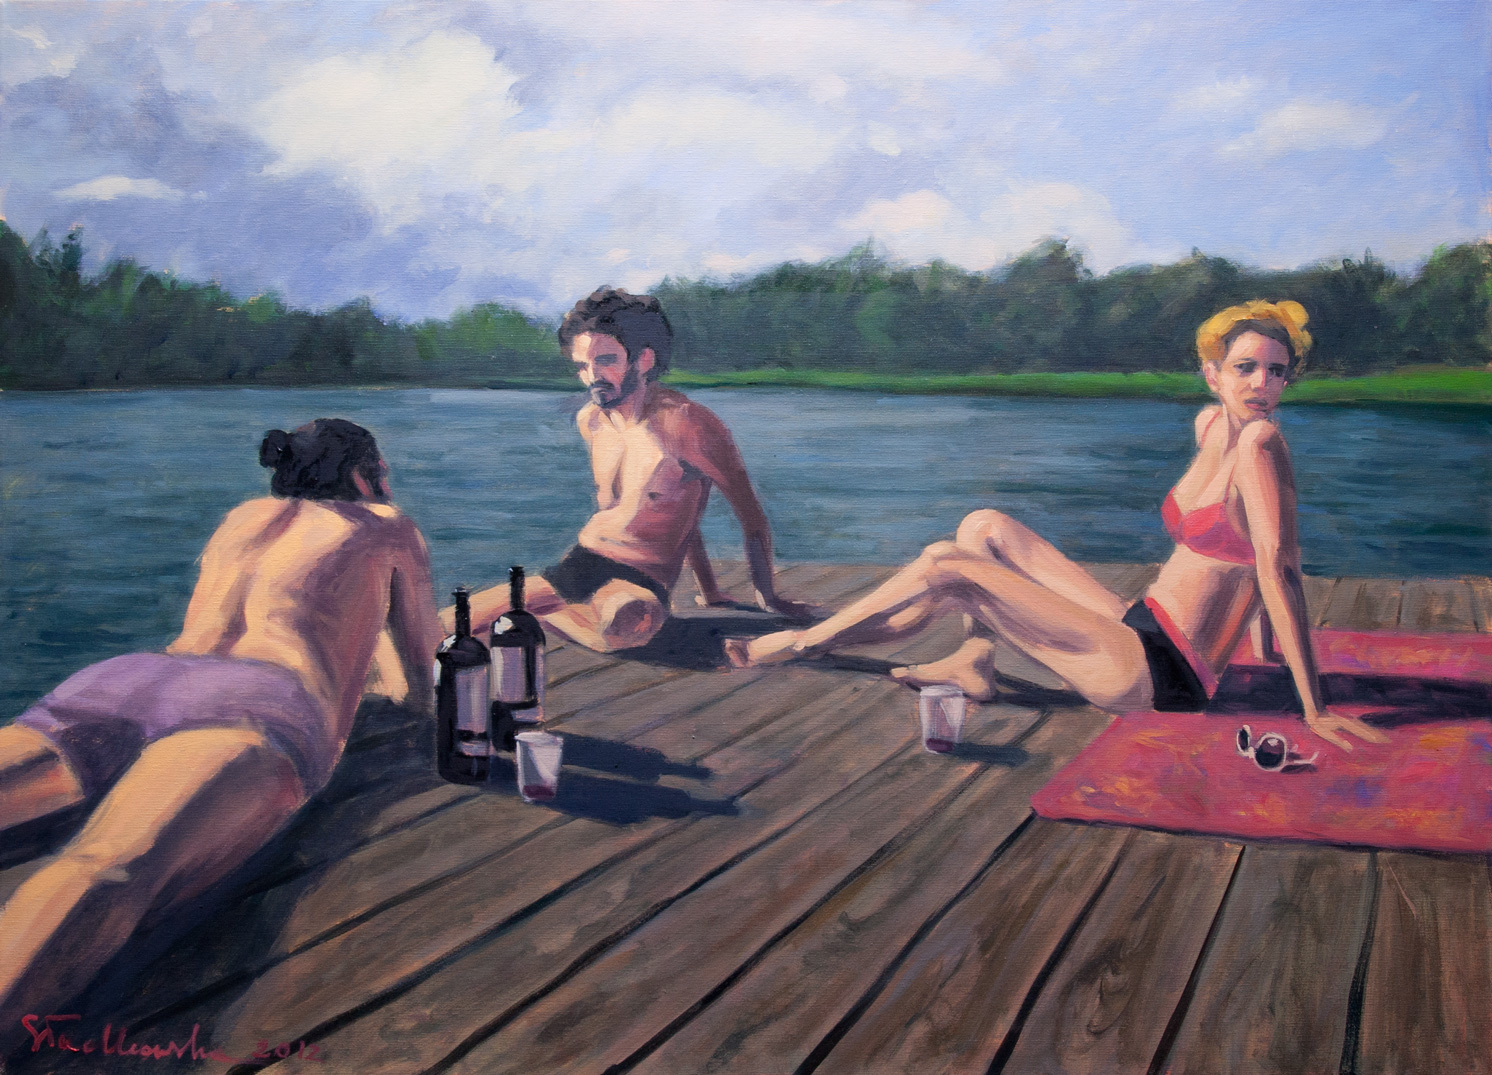 Breakfast on a raft 100x73 olej płotno 2012